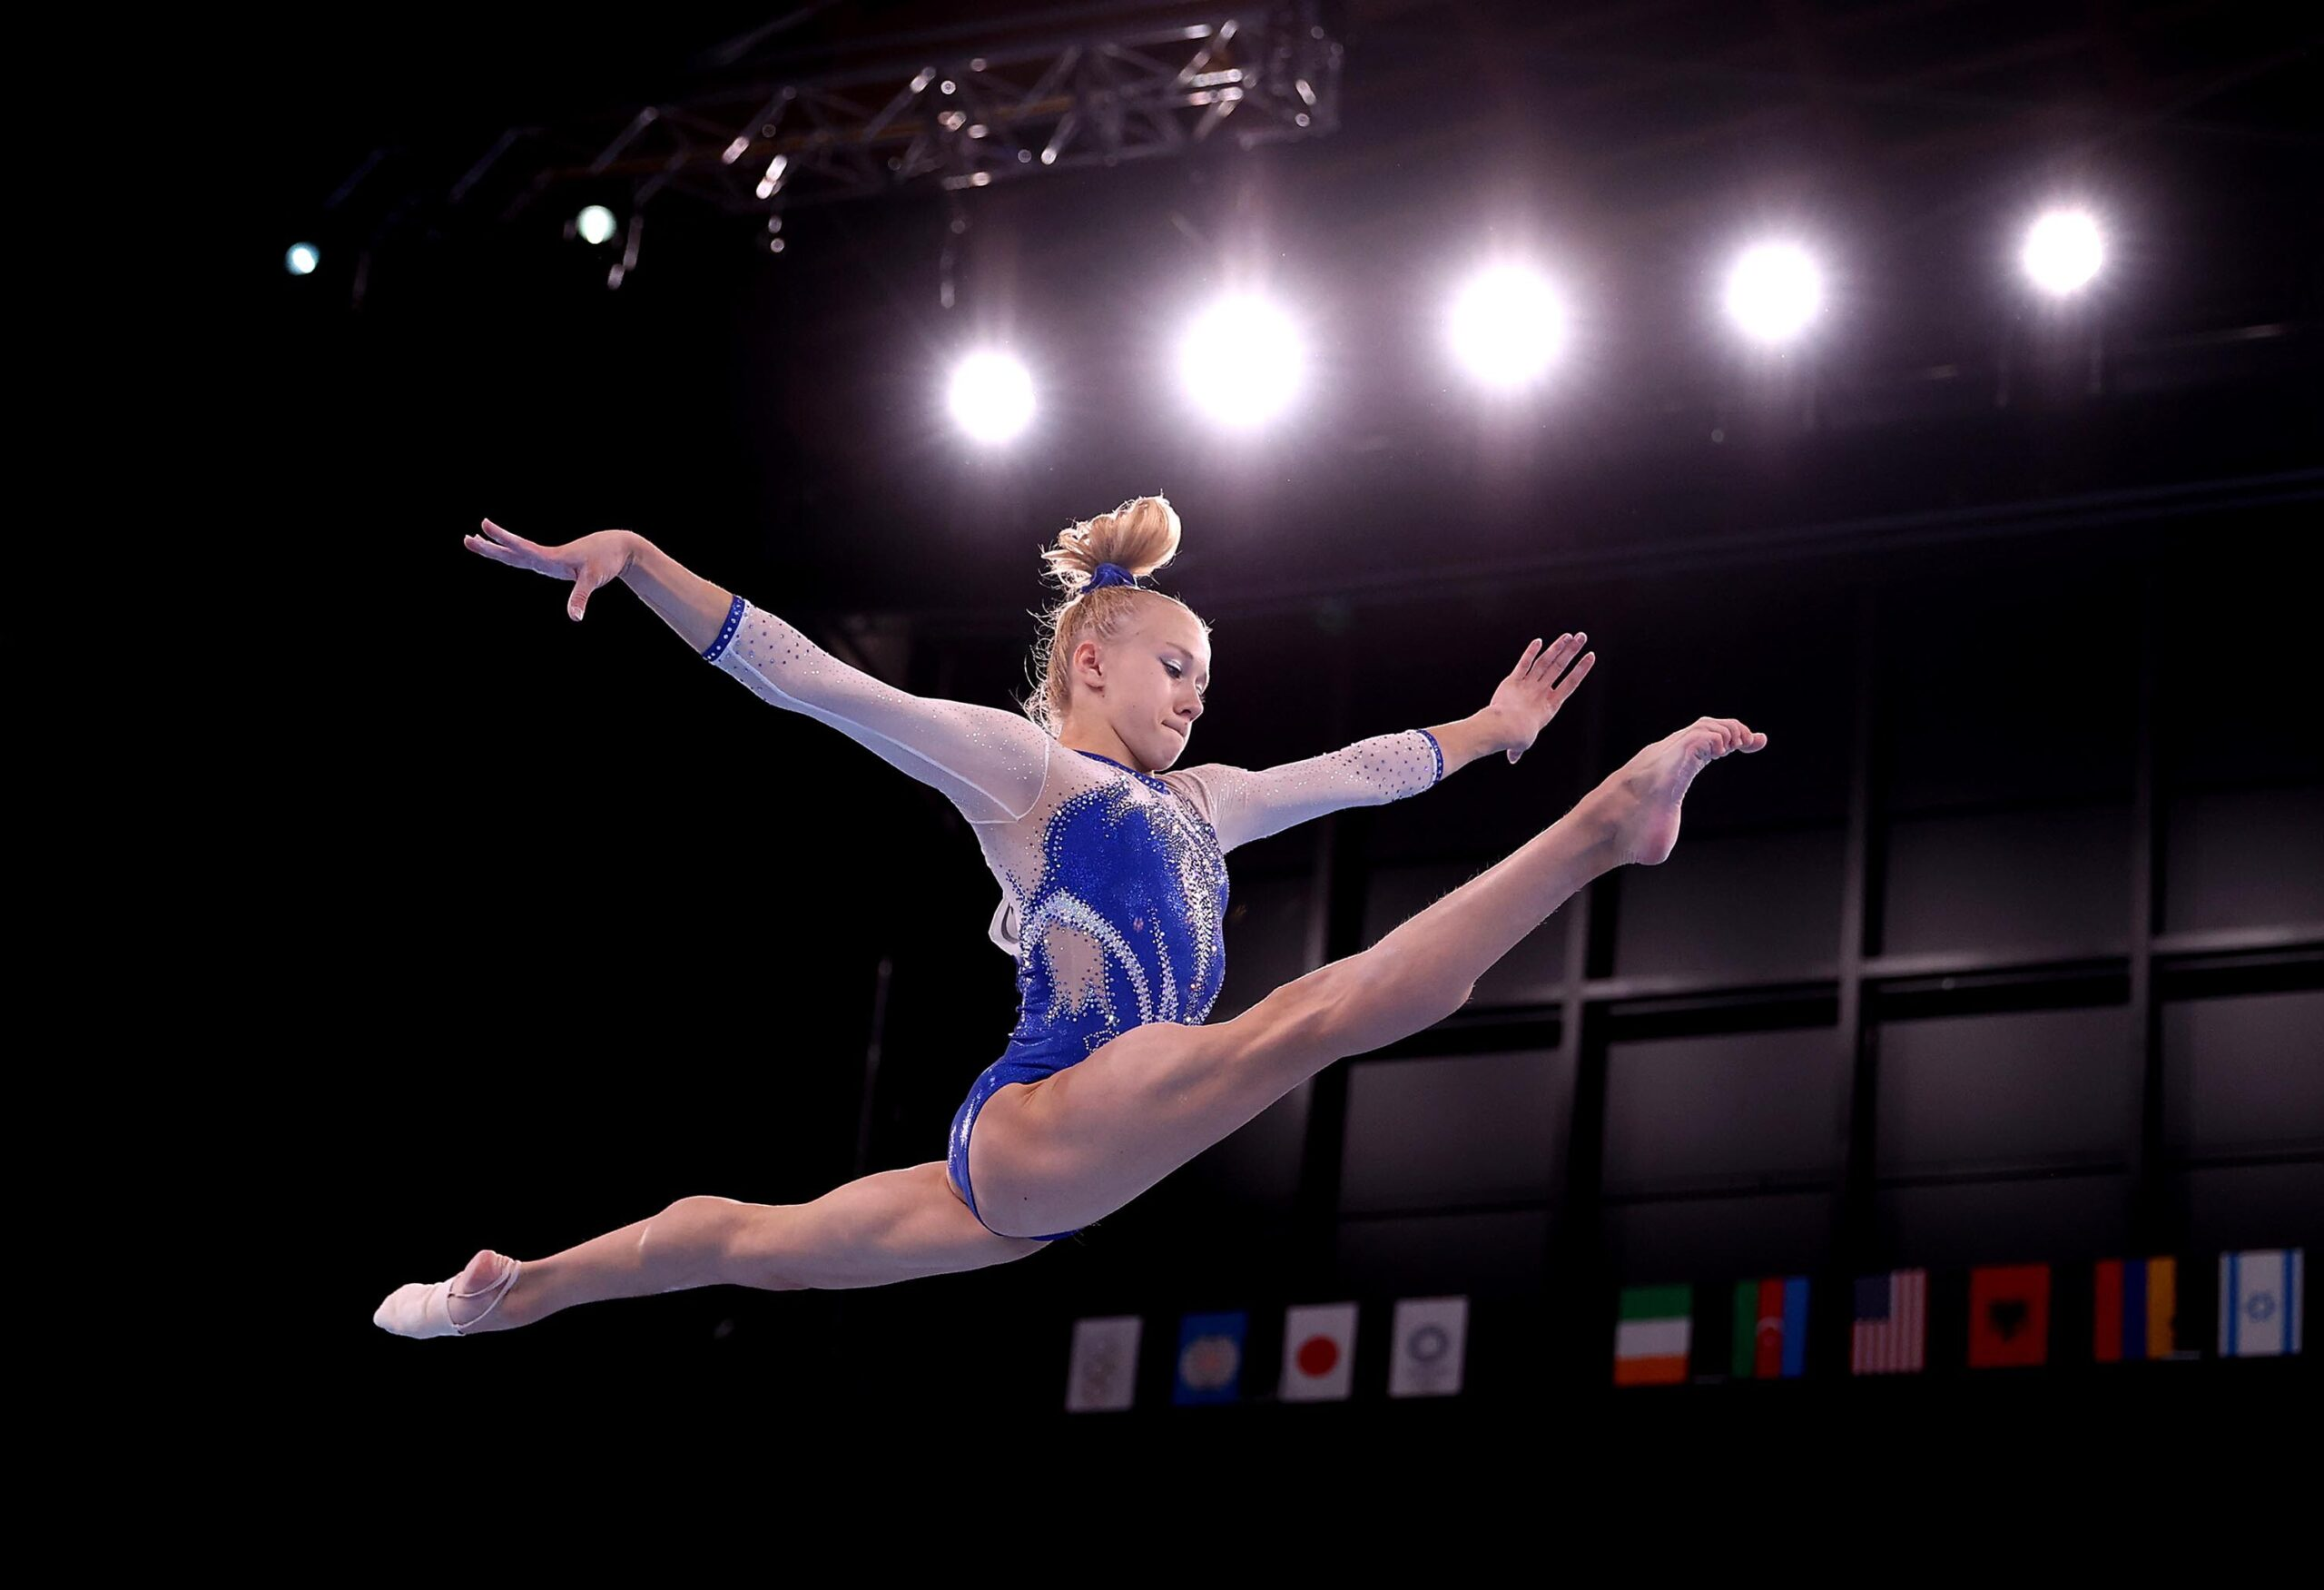 <i>Laurence Griffiths/Getty Images</i><br/>Viktoriia Listunova of the ROC competes in balance beam during the Women's Team Final at Tokyo 2020. The Russian Olympic Committee (ROC) won a dramatic women's team gymnastic final to take the gold medal after Team USA was hit by the withdrawal of Simone Biles.